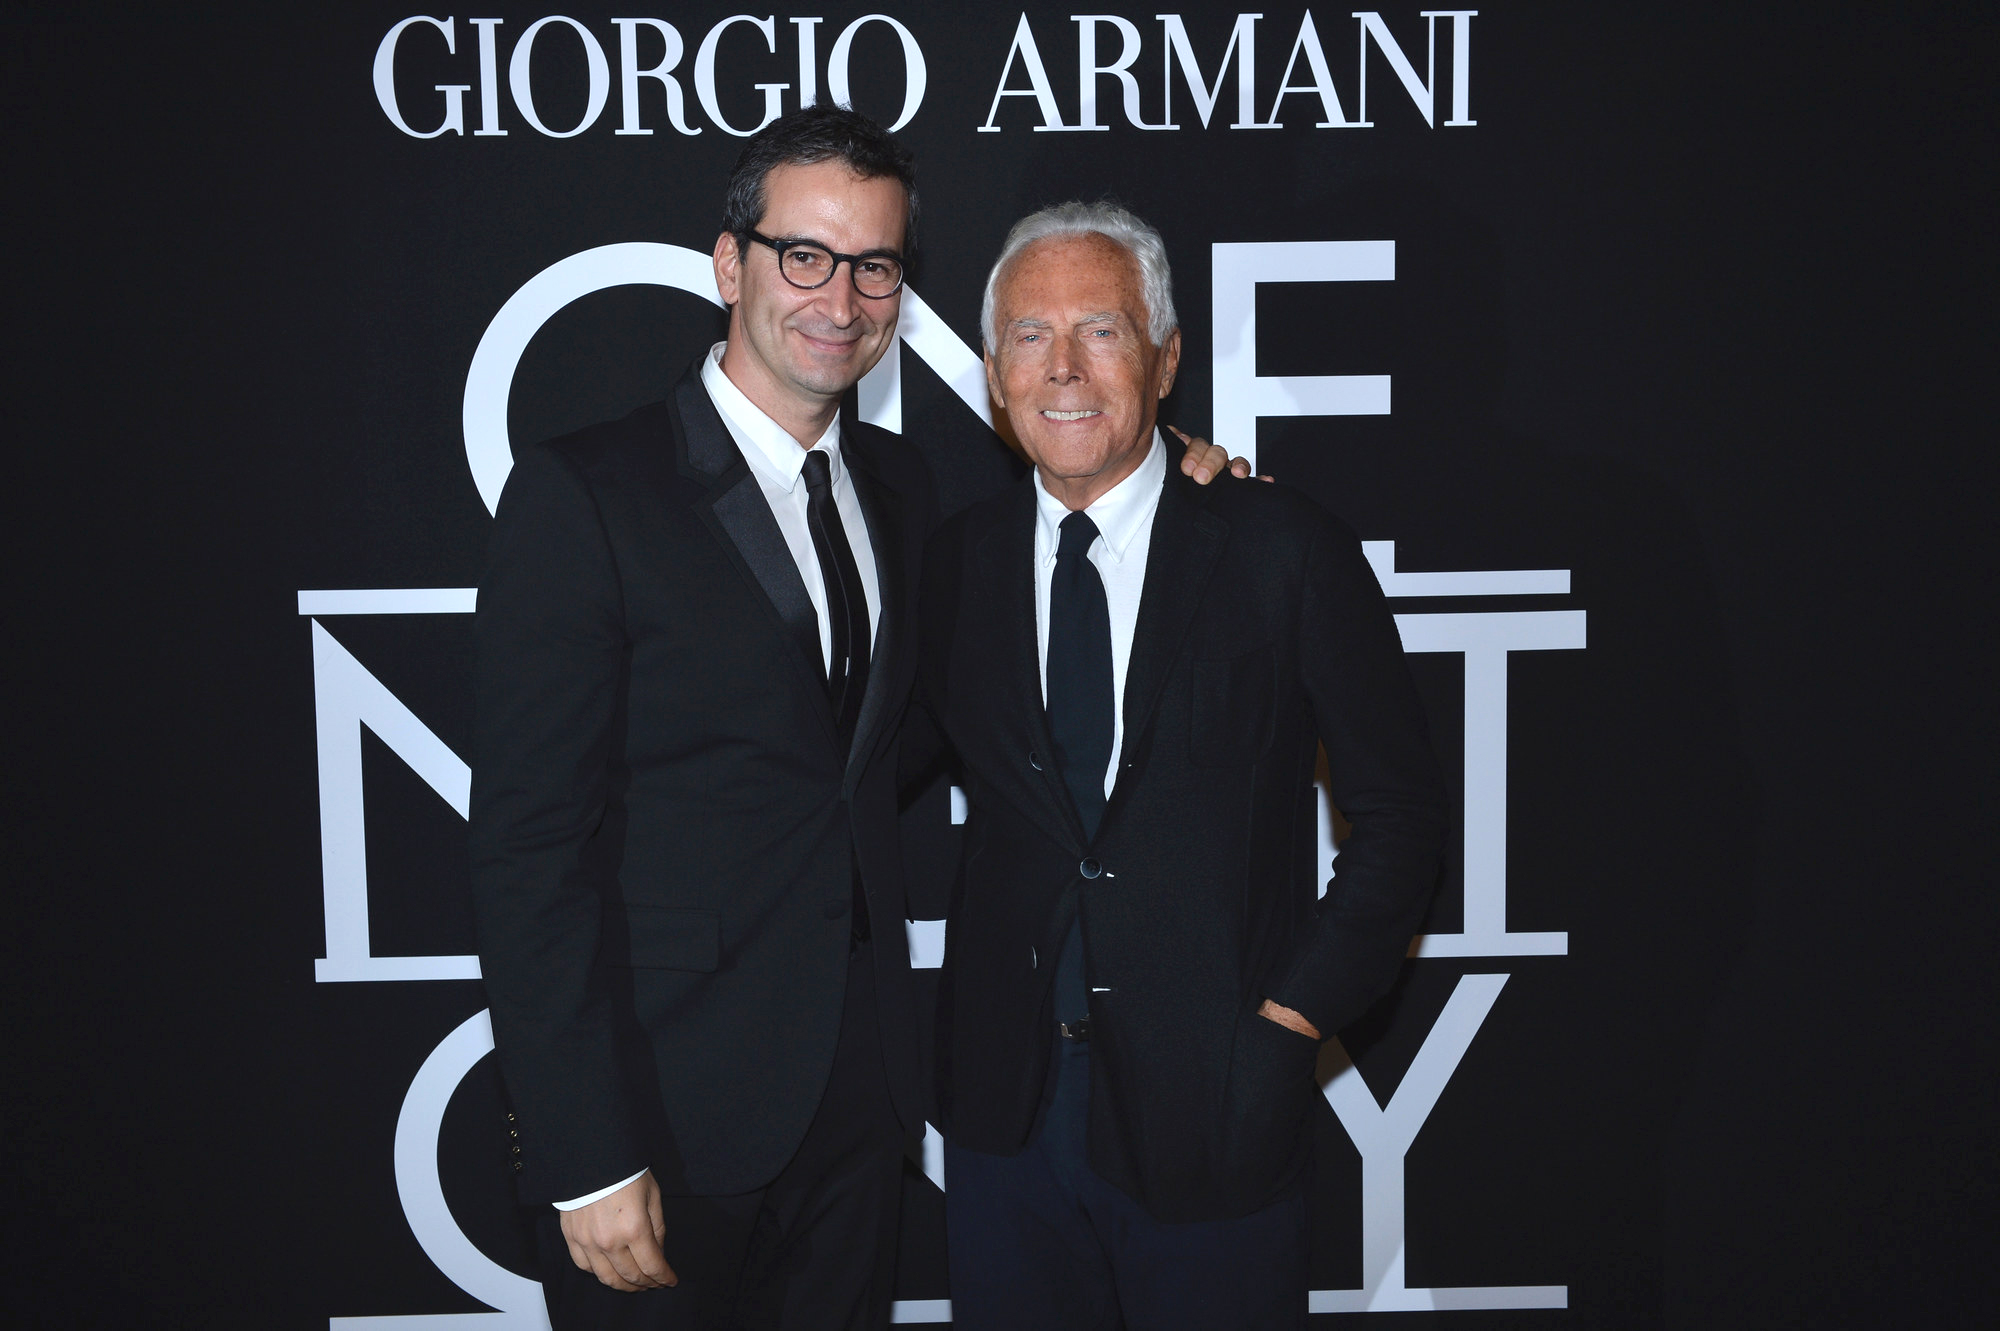 Event: (id=84491) Giorgio Armani - One Night Only New YorkLocation: New YorkPeople: Marchetti Federico, Armani Giorgio